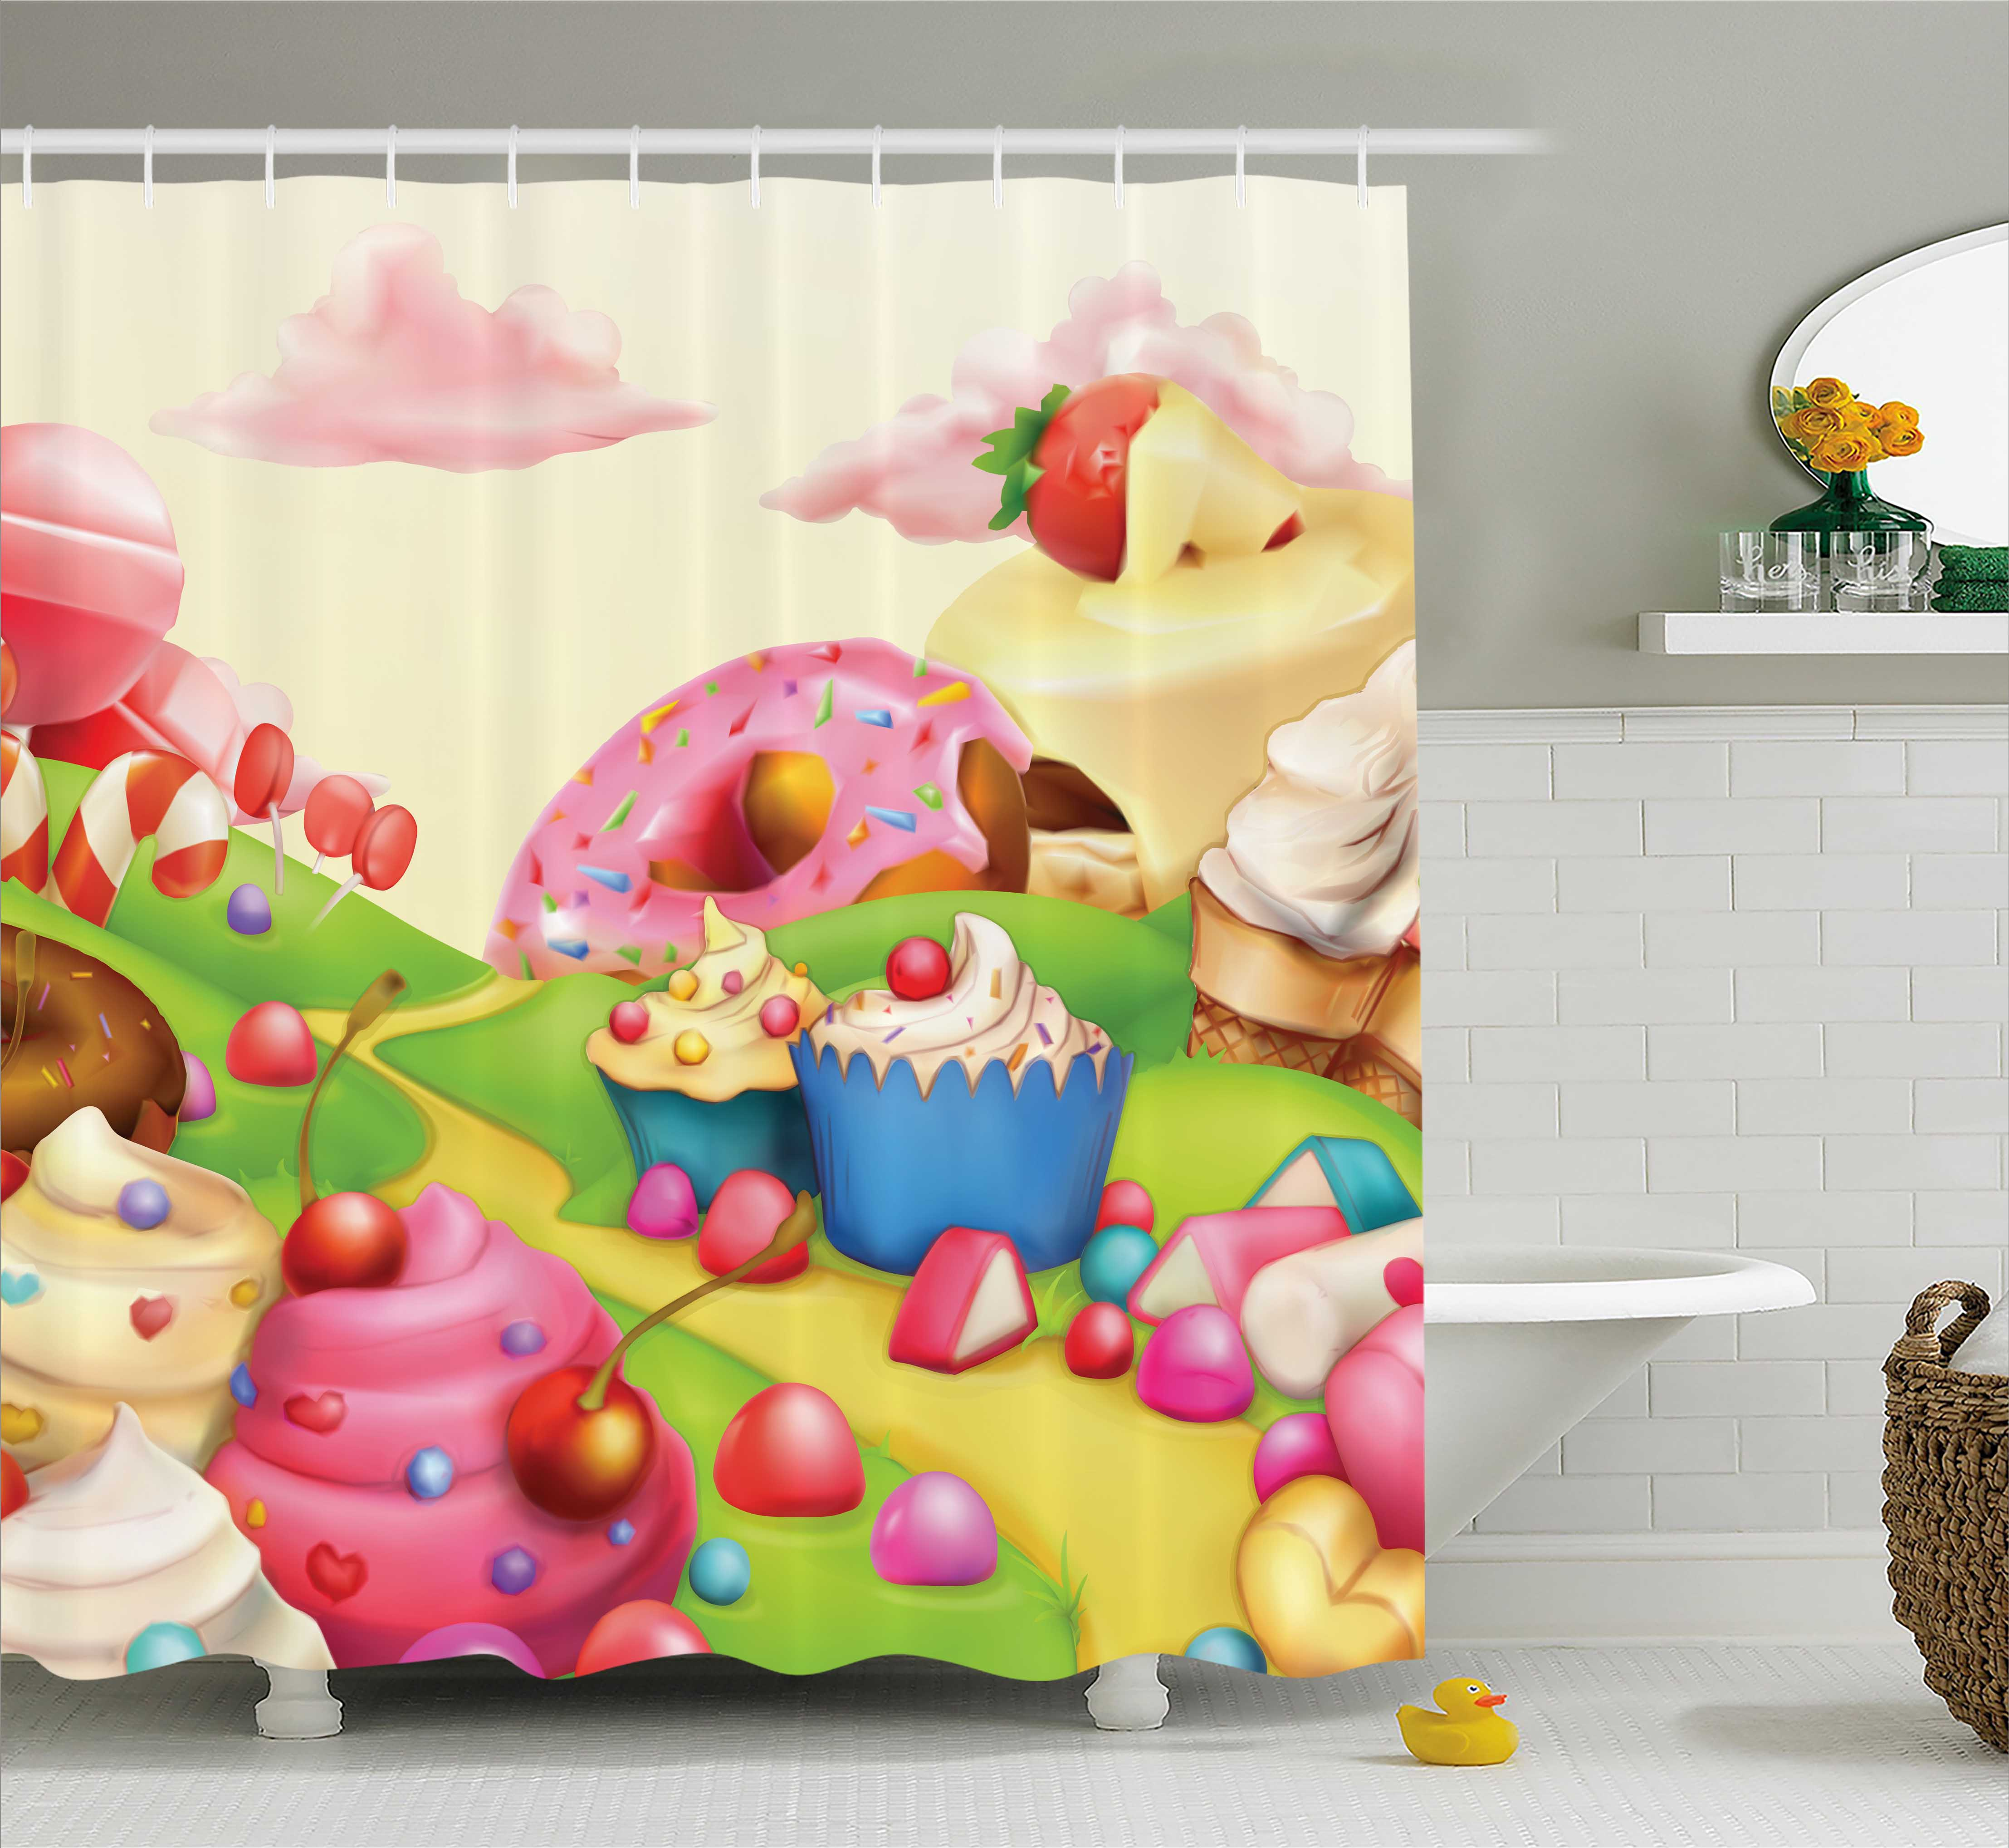 Modern Shower Curtain, Yummy Donuts Sweet Land Cupcakes I...